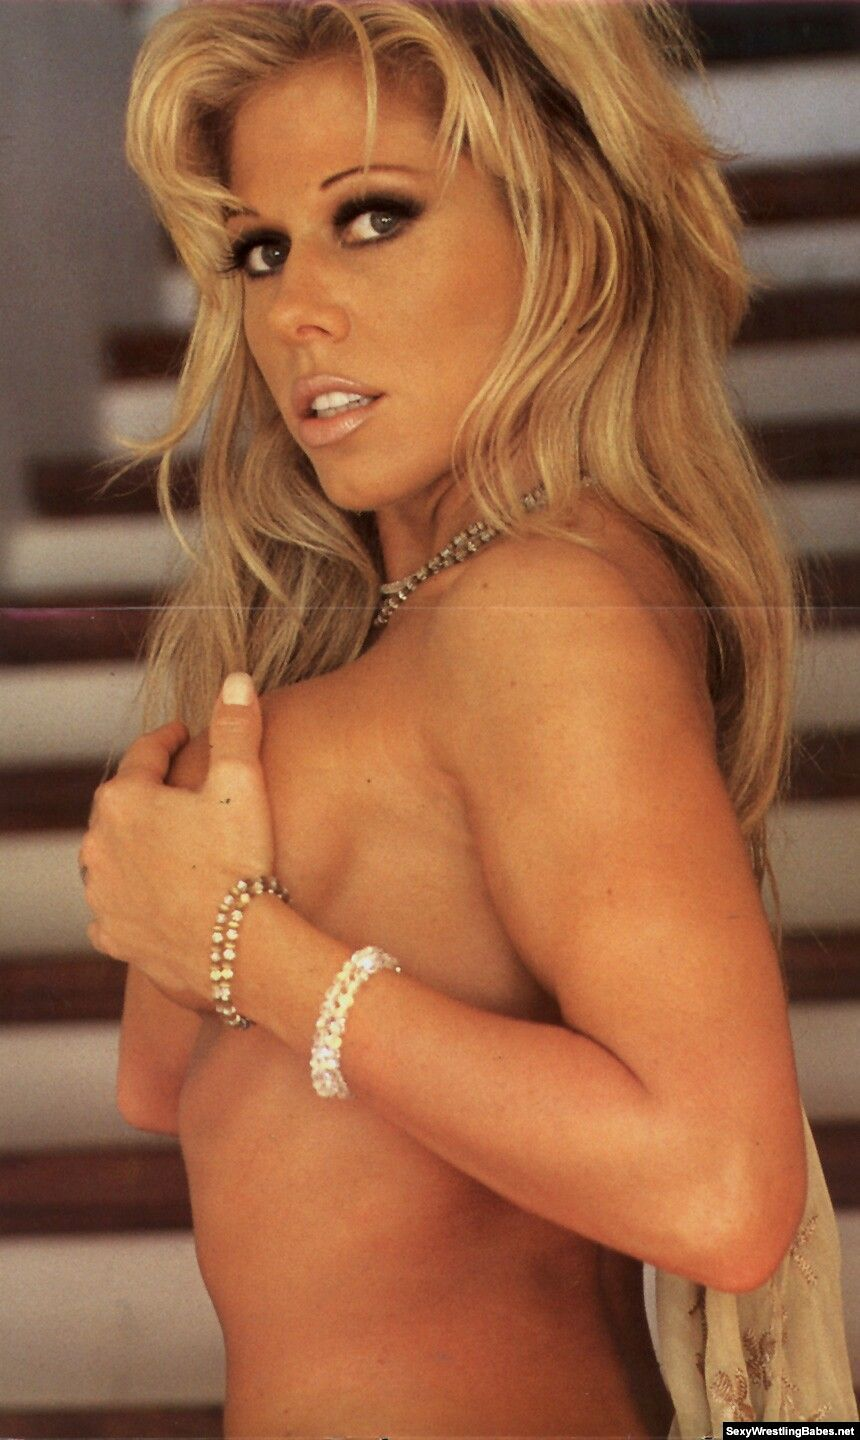 naked pictures of terri runnels